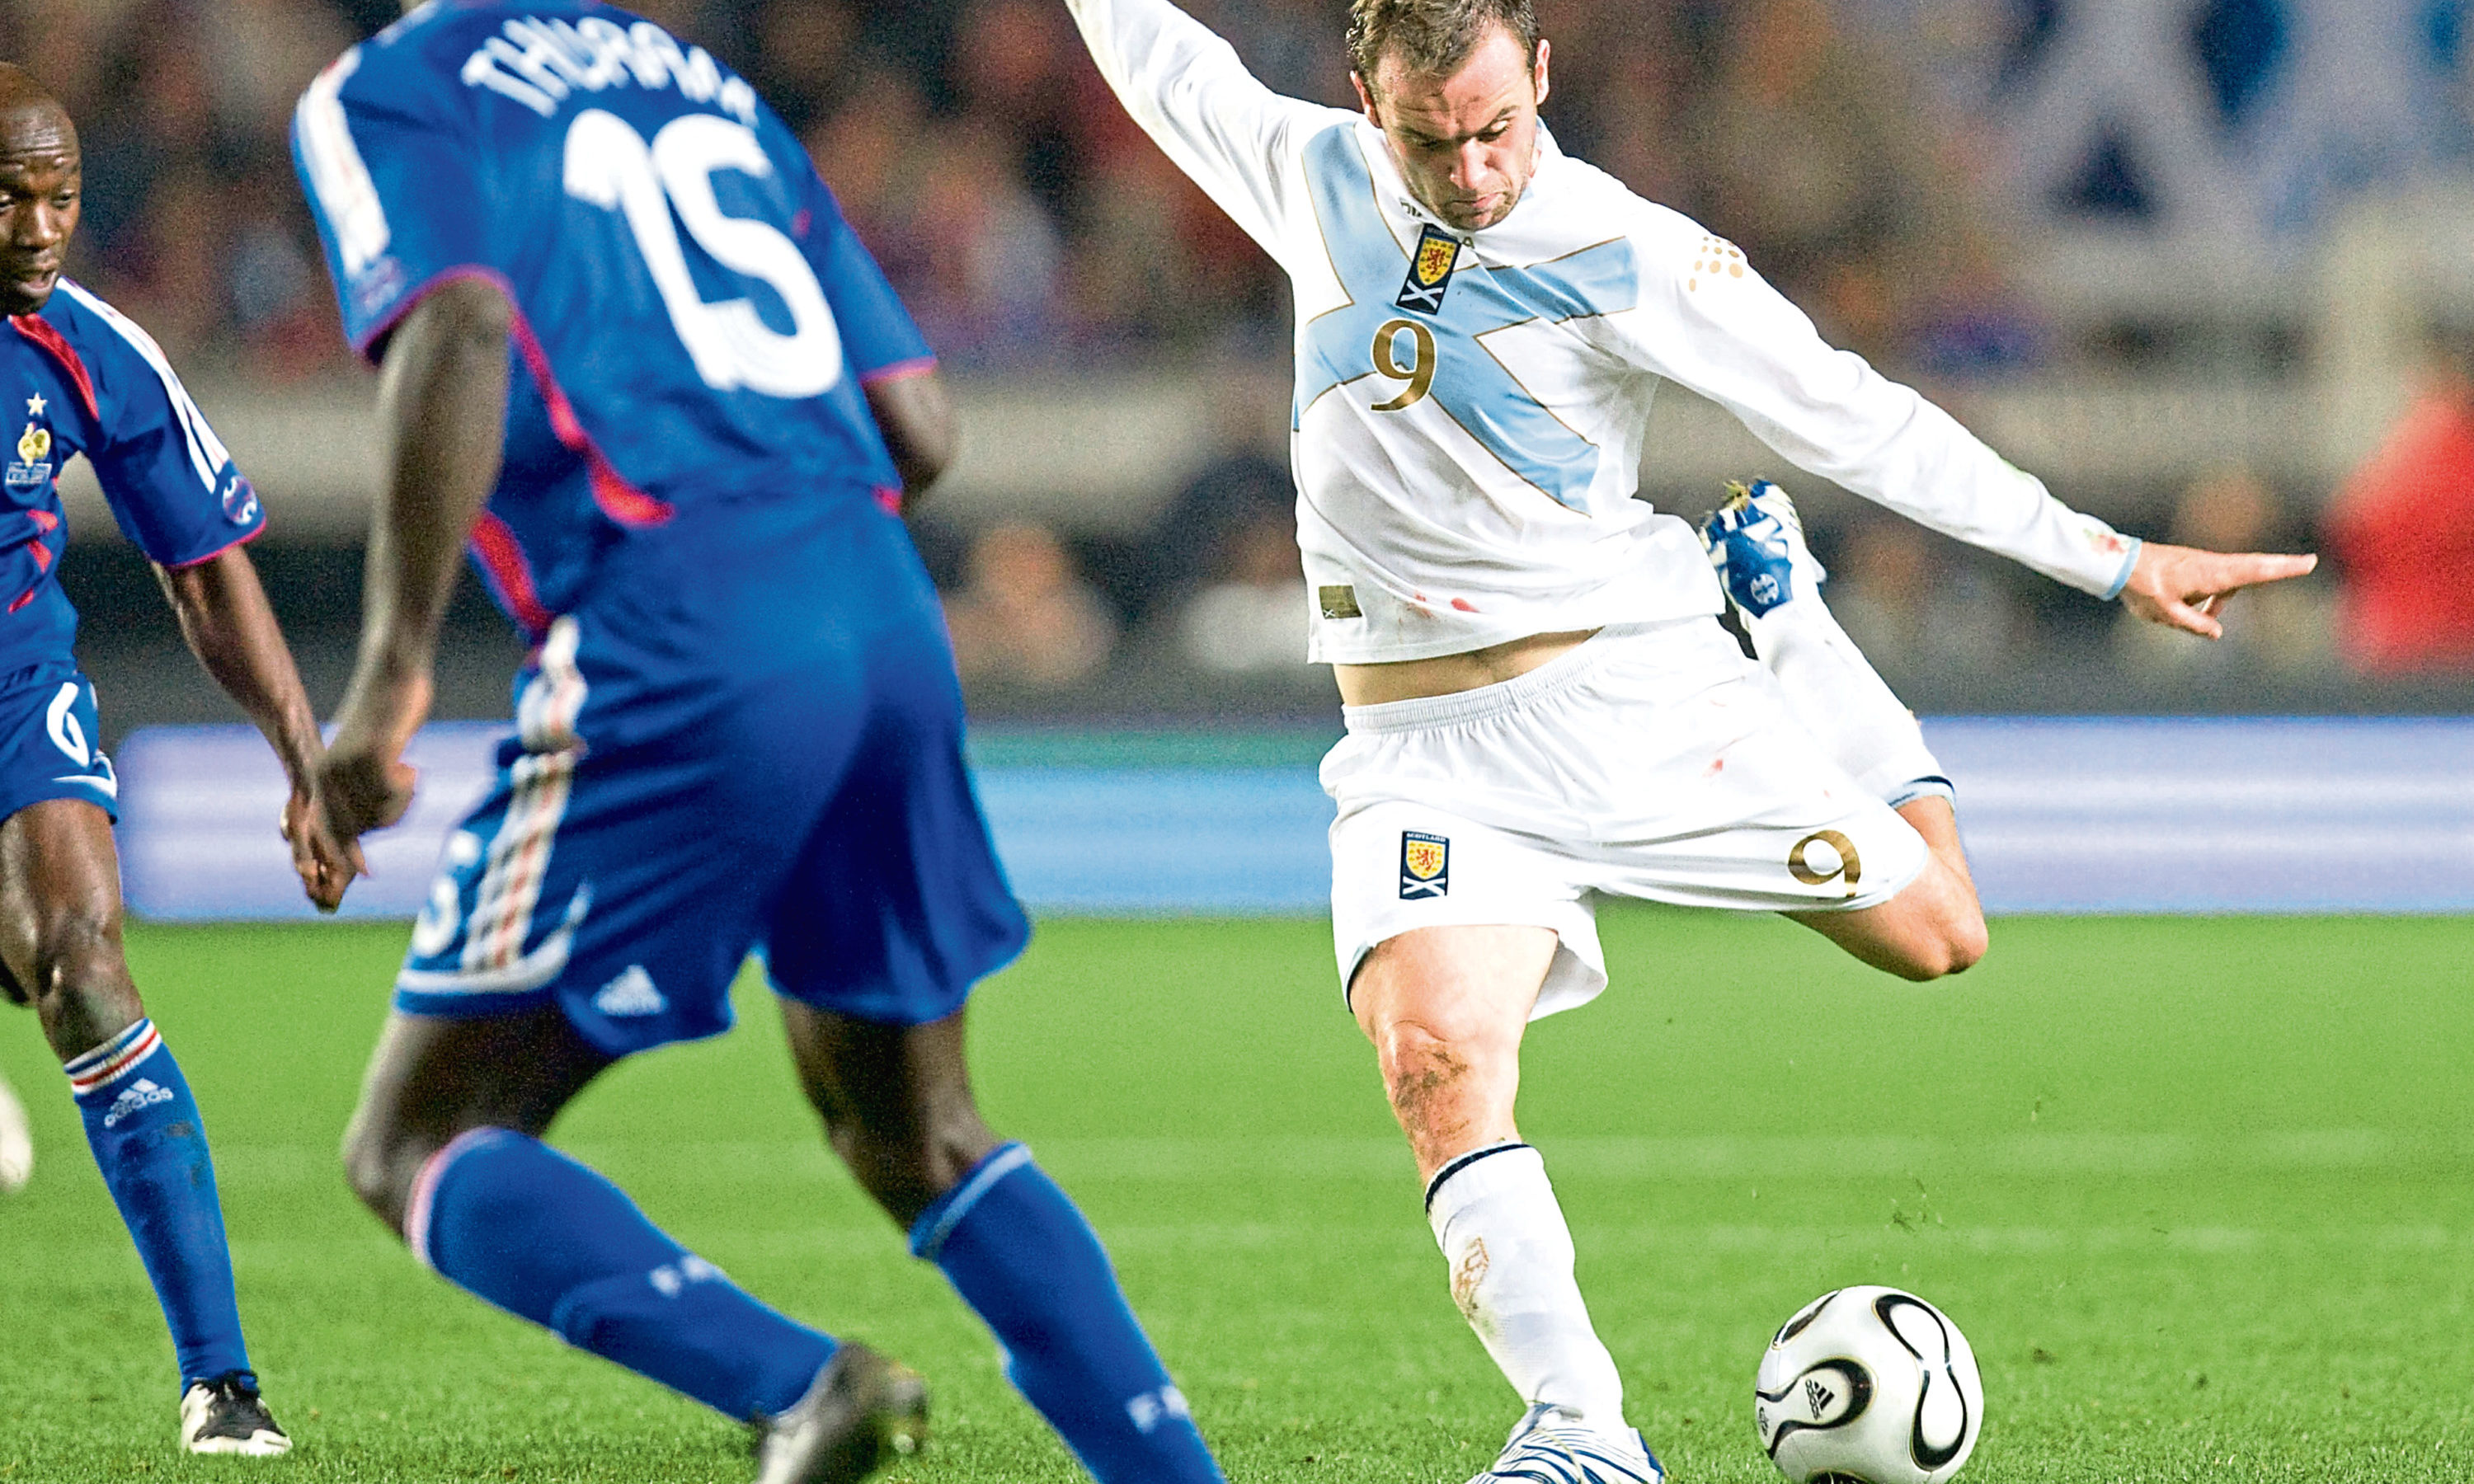 McFadden scored one of the greatest goals in Scotland's history during a memorable win against France in 2007.